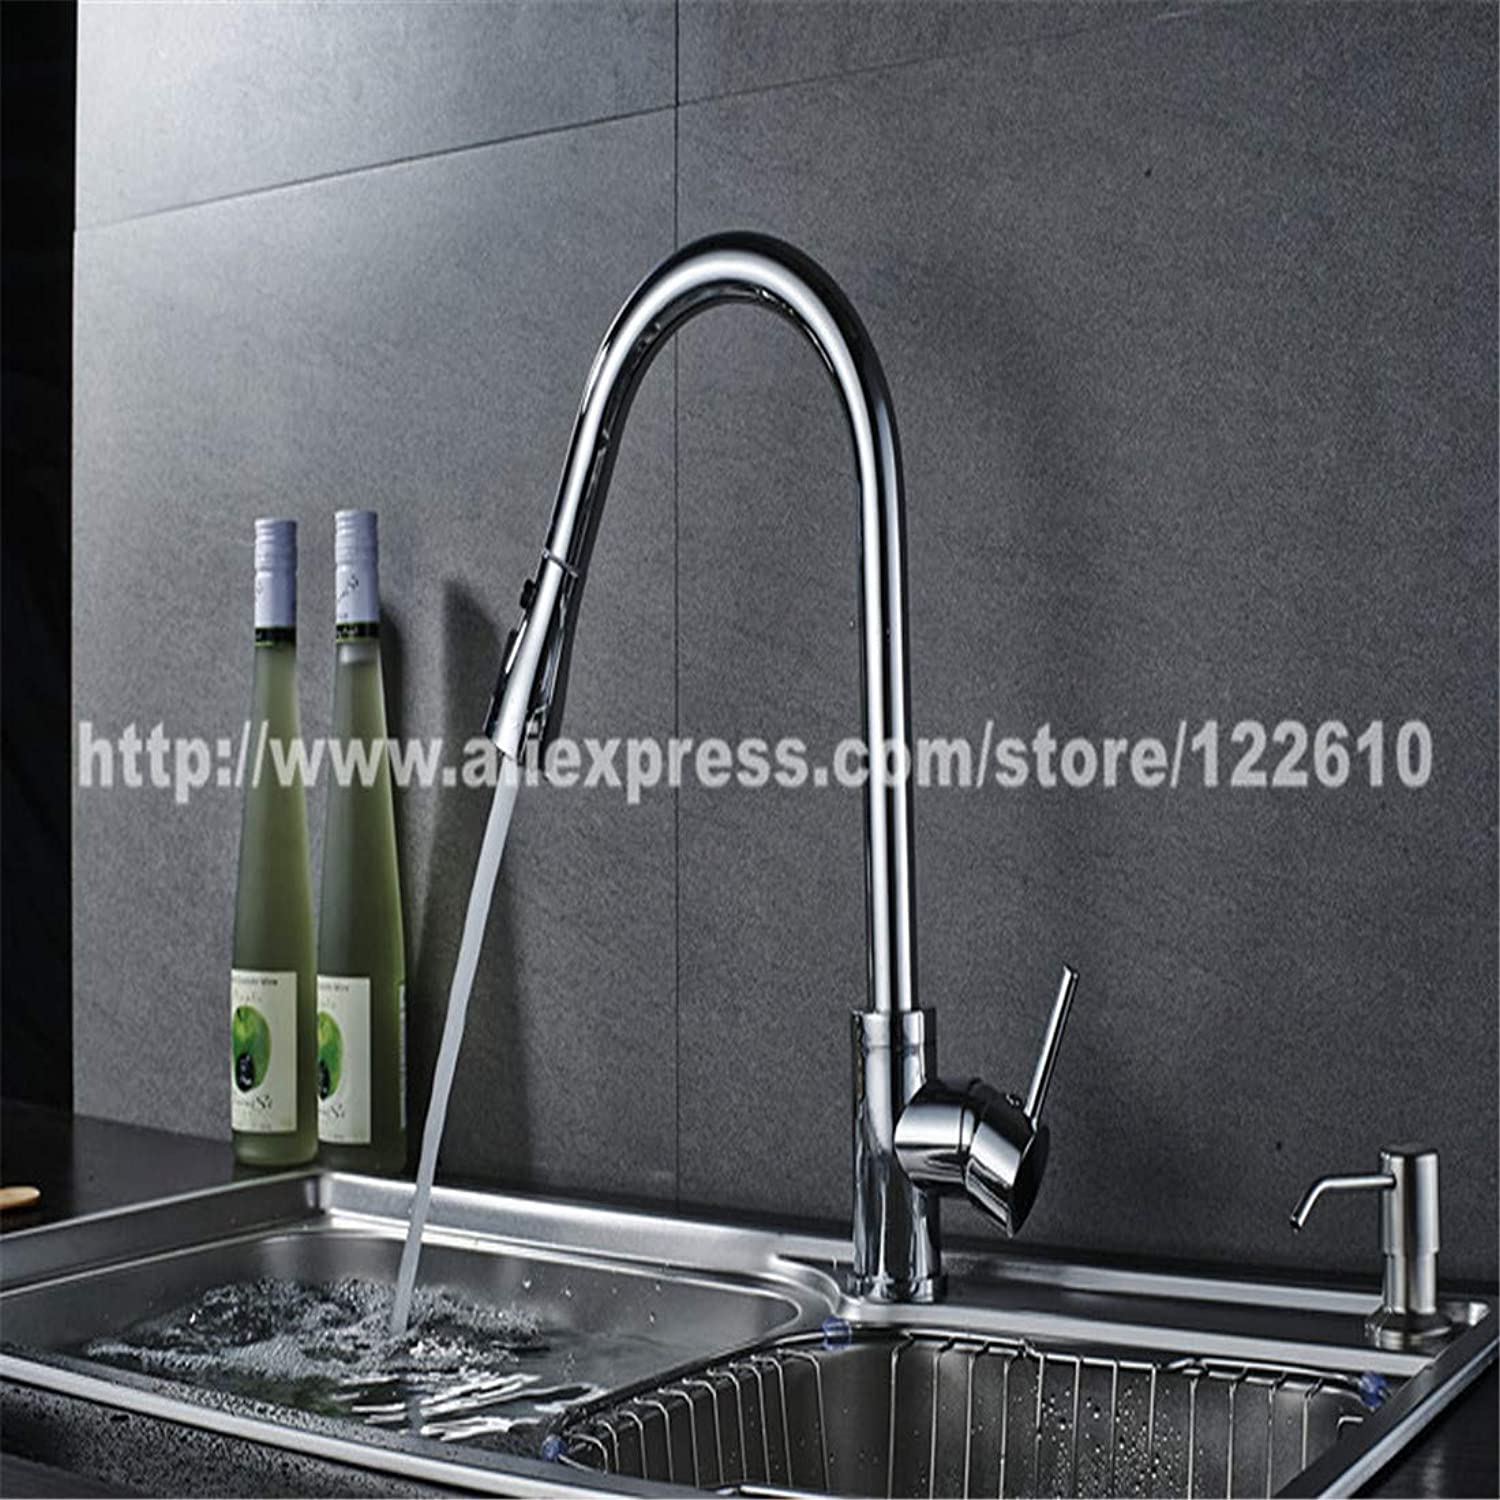 Kitchen Bath Basin Sink Bathroom Taps Silver Single Handle Kitchen Faucet Mixer Pull Out Kitchen Tap Single Hole 3 Function Copper Chrome Swivel Sink Mixer Tap Ctzl6409